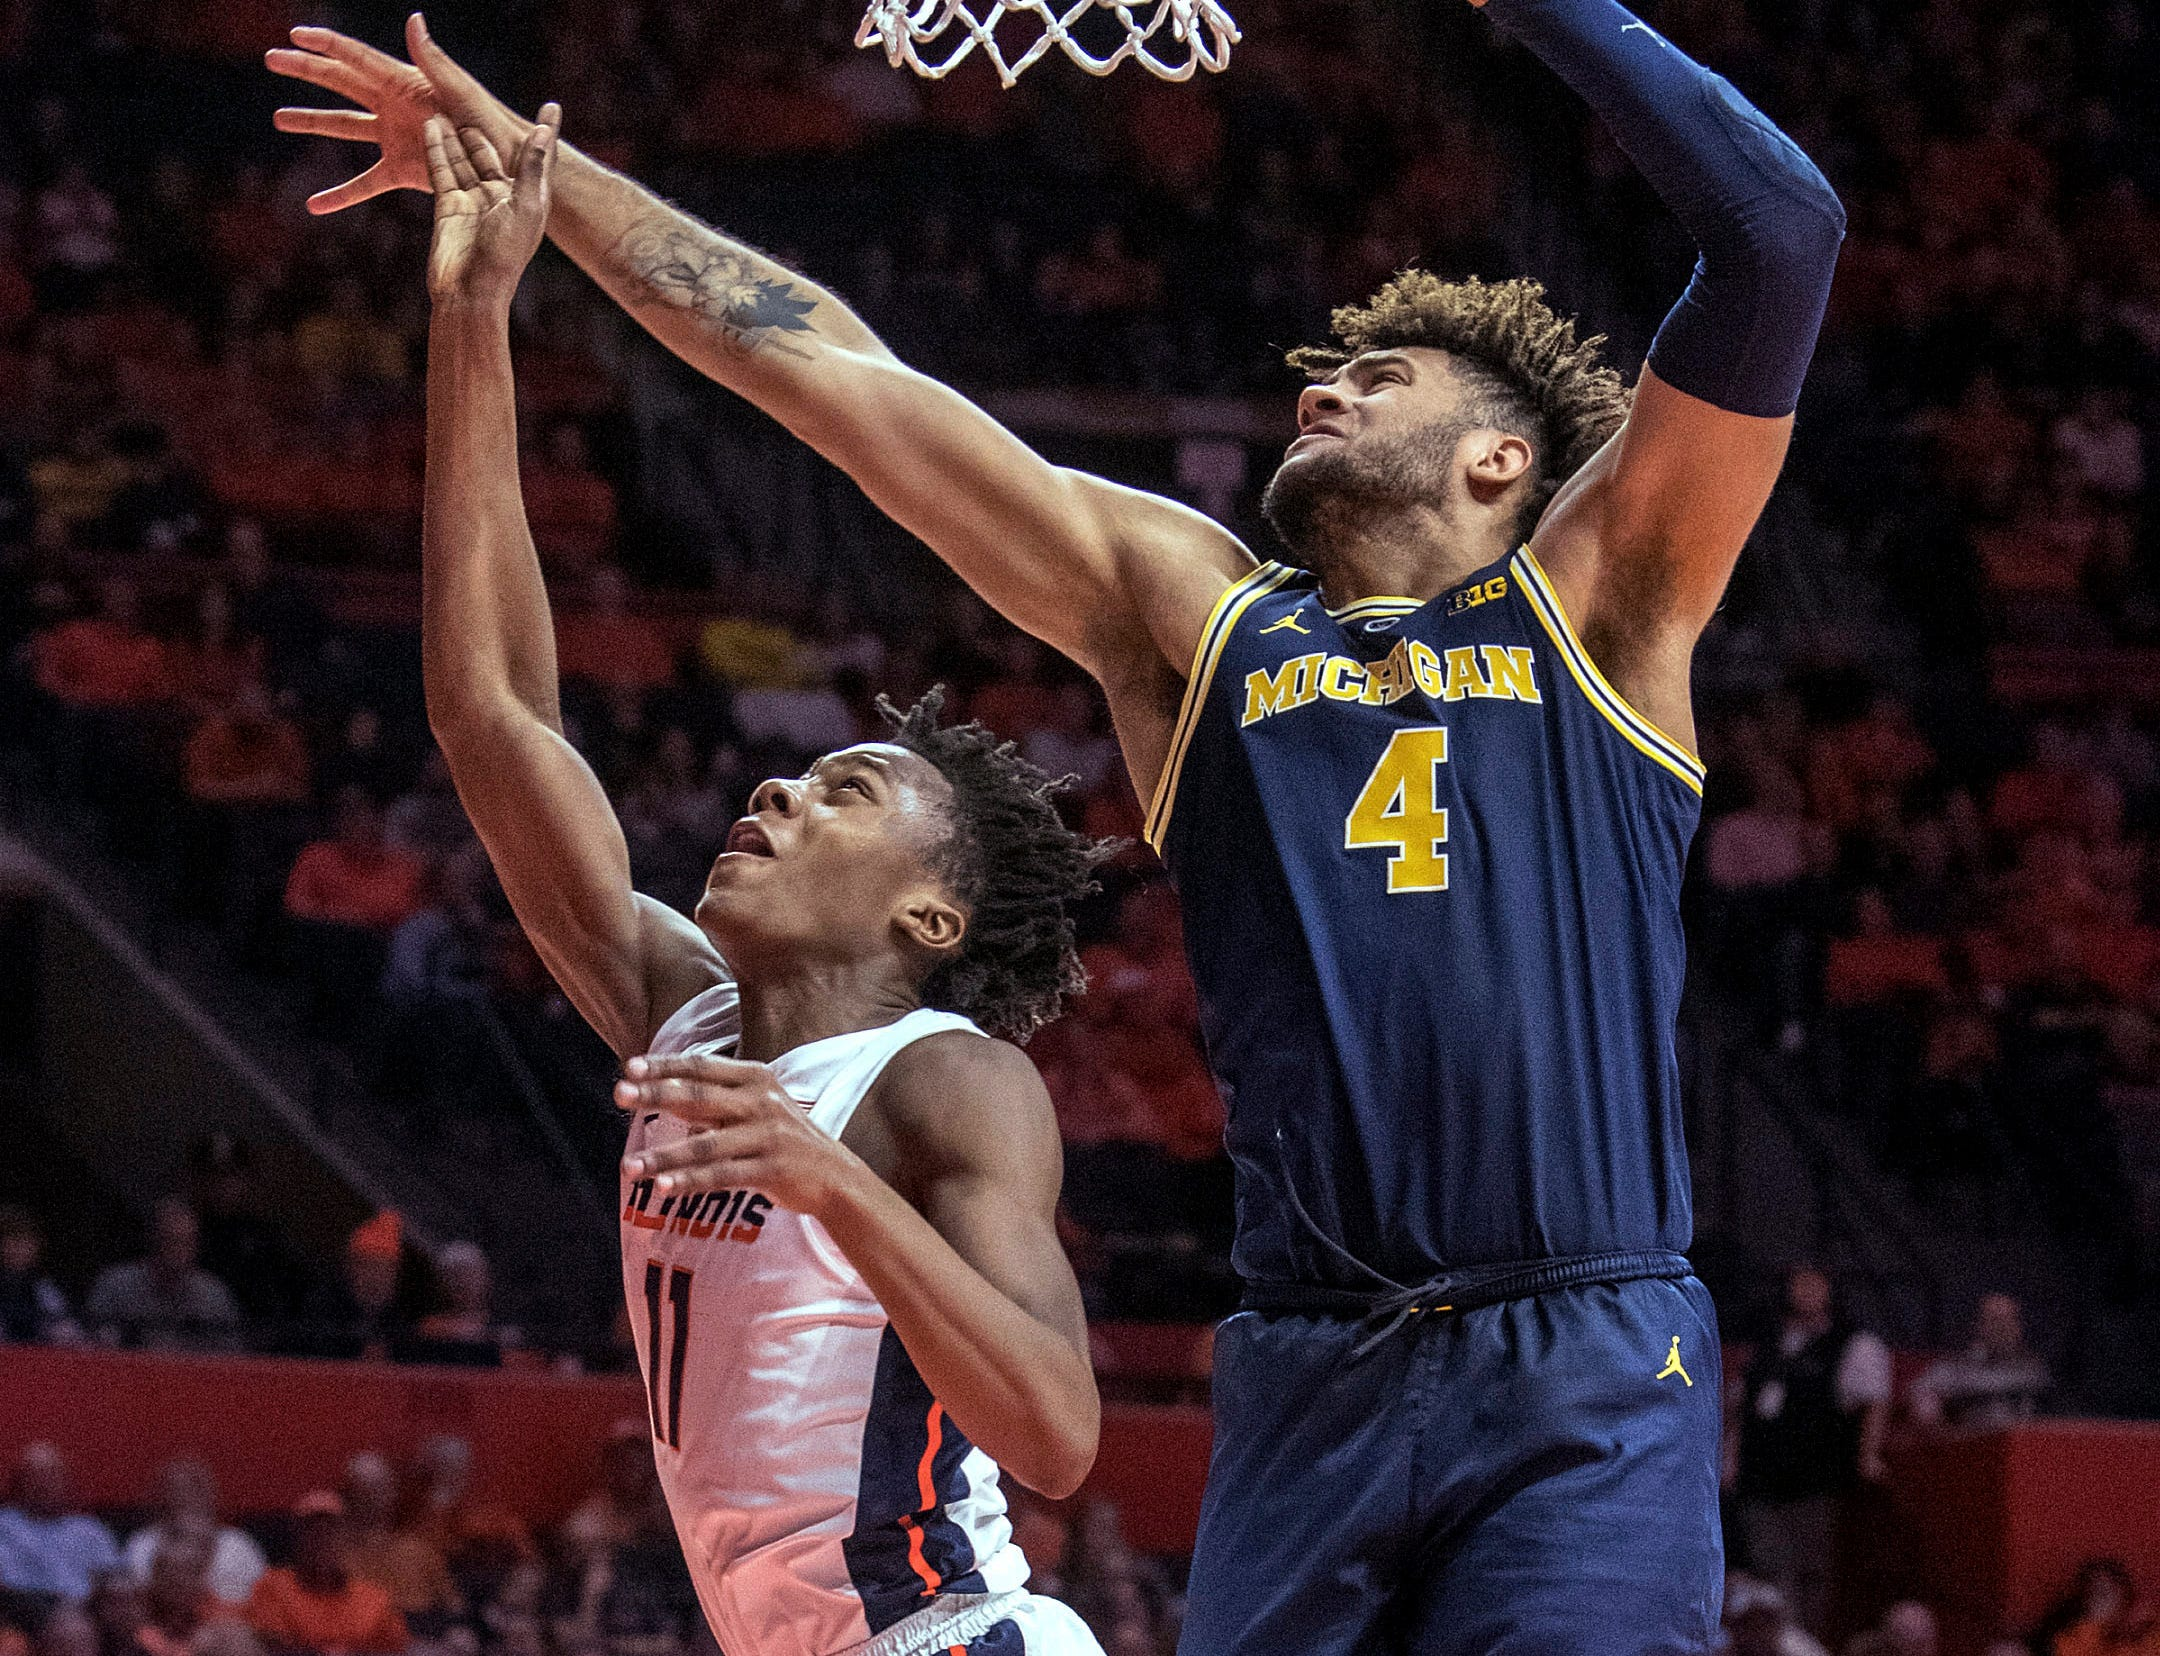 Illinois guard Ayo Dosunmu (11) shoots next to Michigan forward Isaiah Livers (4) during the first half.